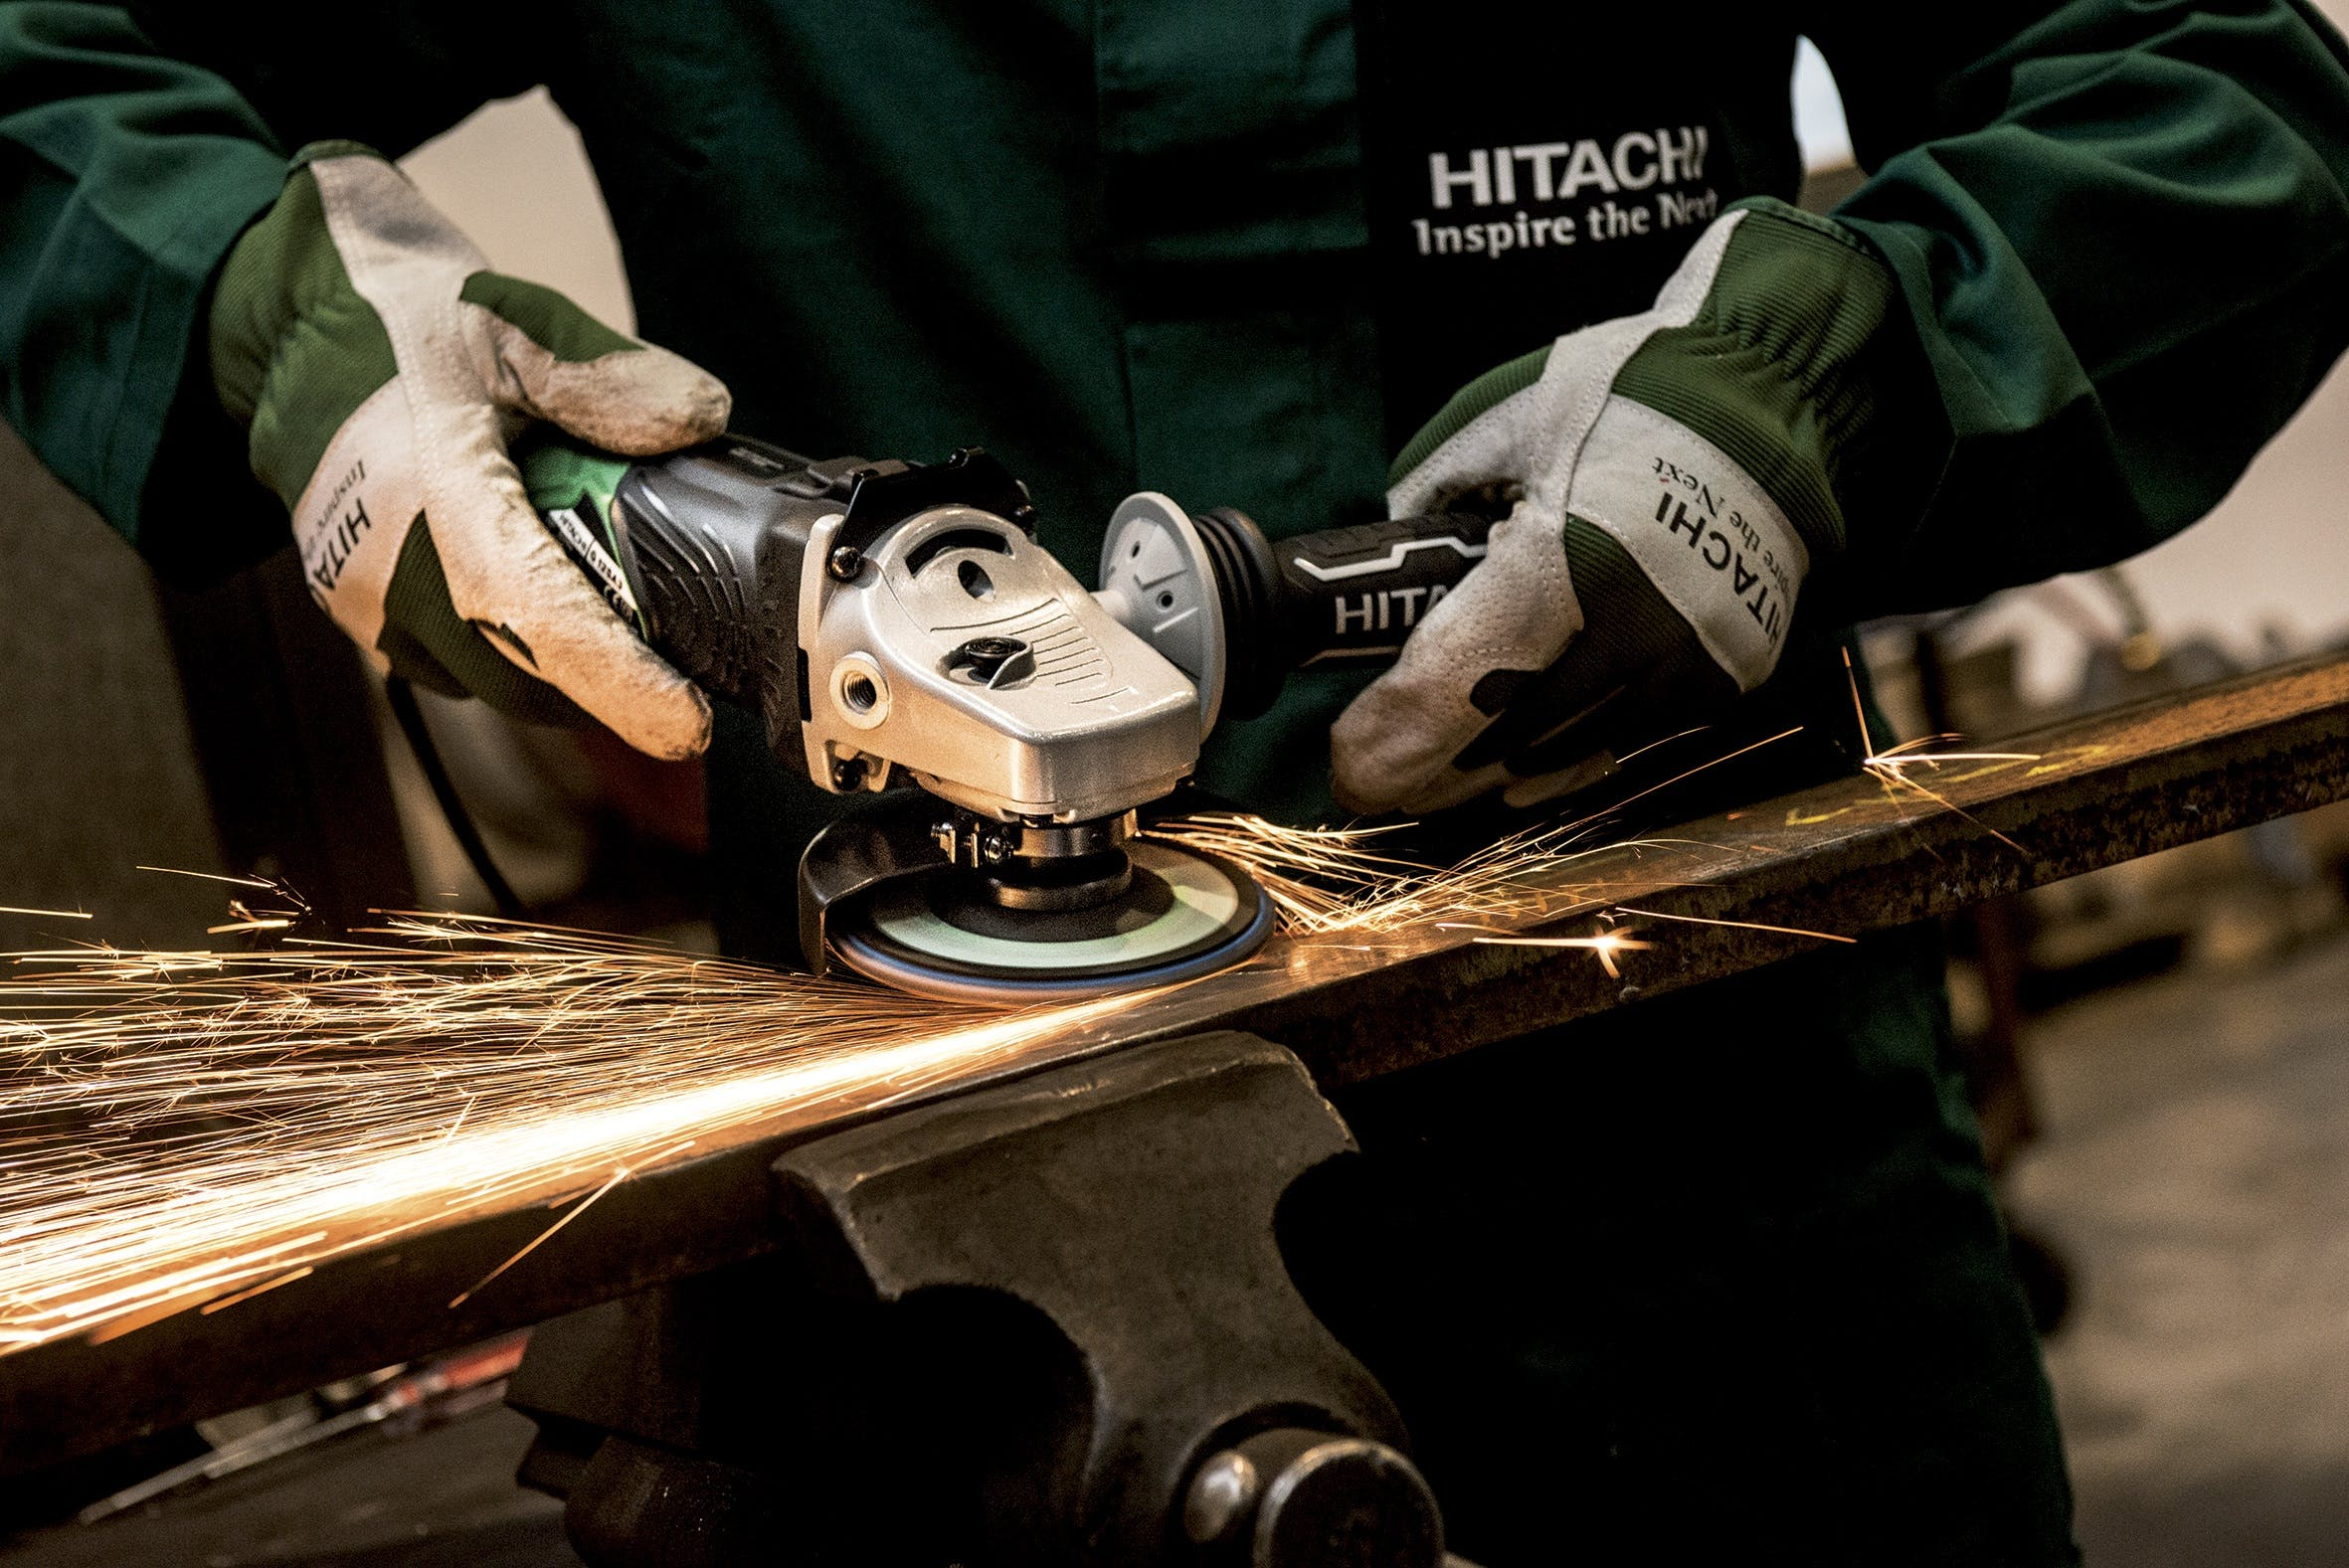 Person Holding Black and Gray Hitachi Angle Grinder